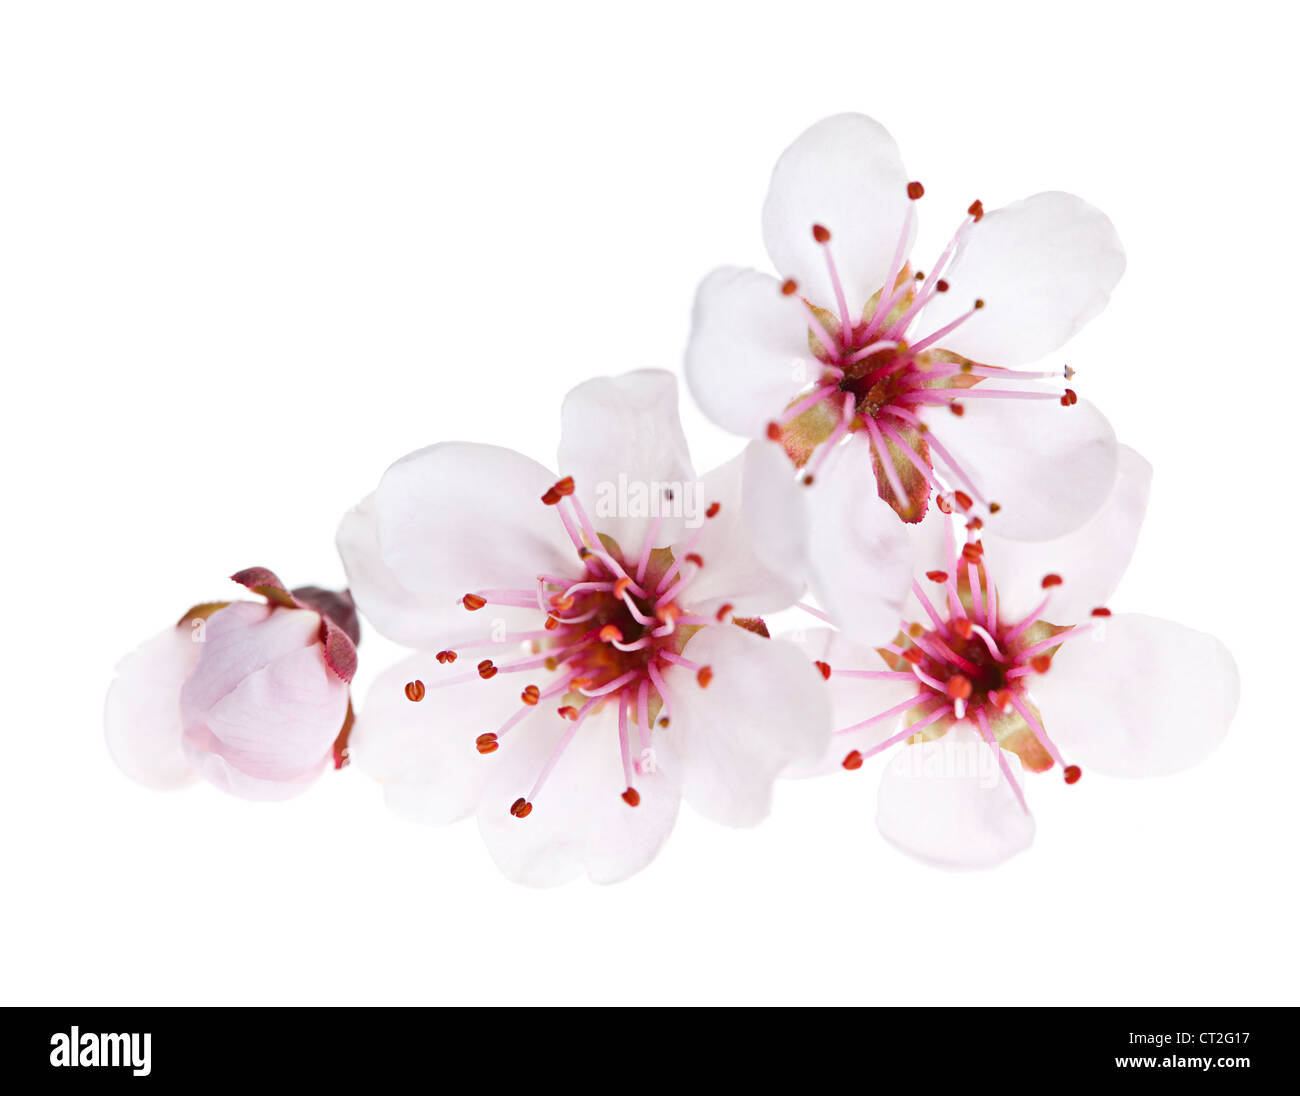 Cherry blossom flowers close up isolated on white background - Stock Image